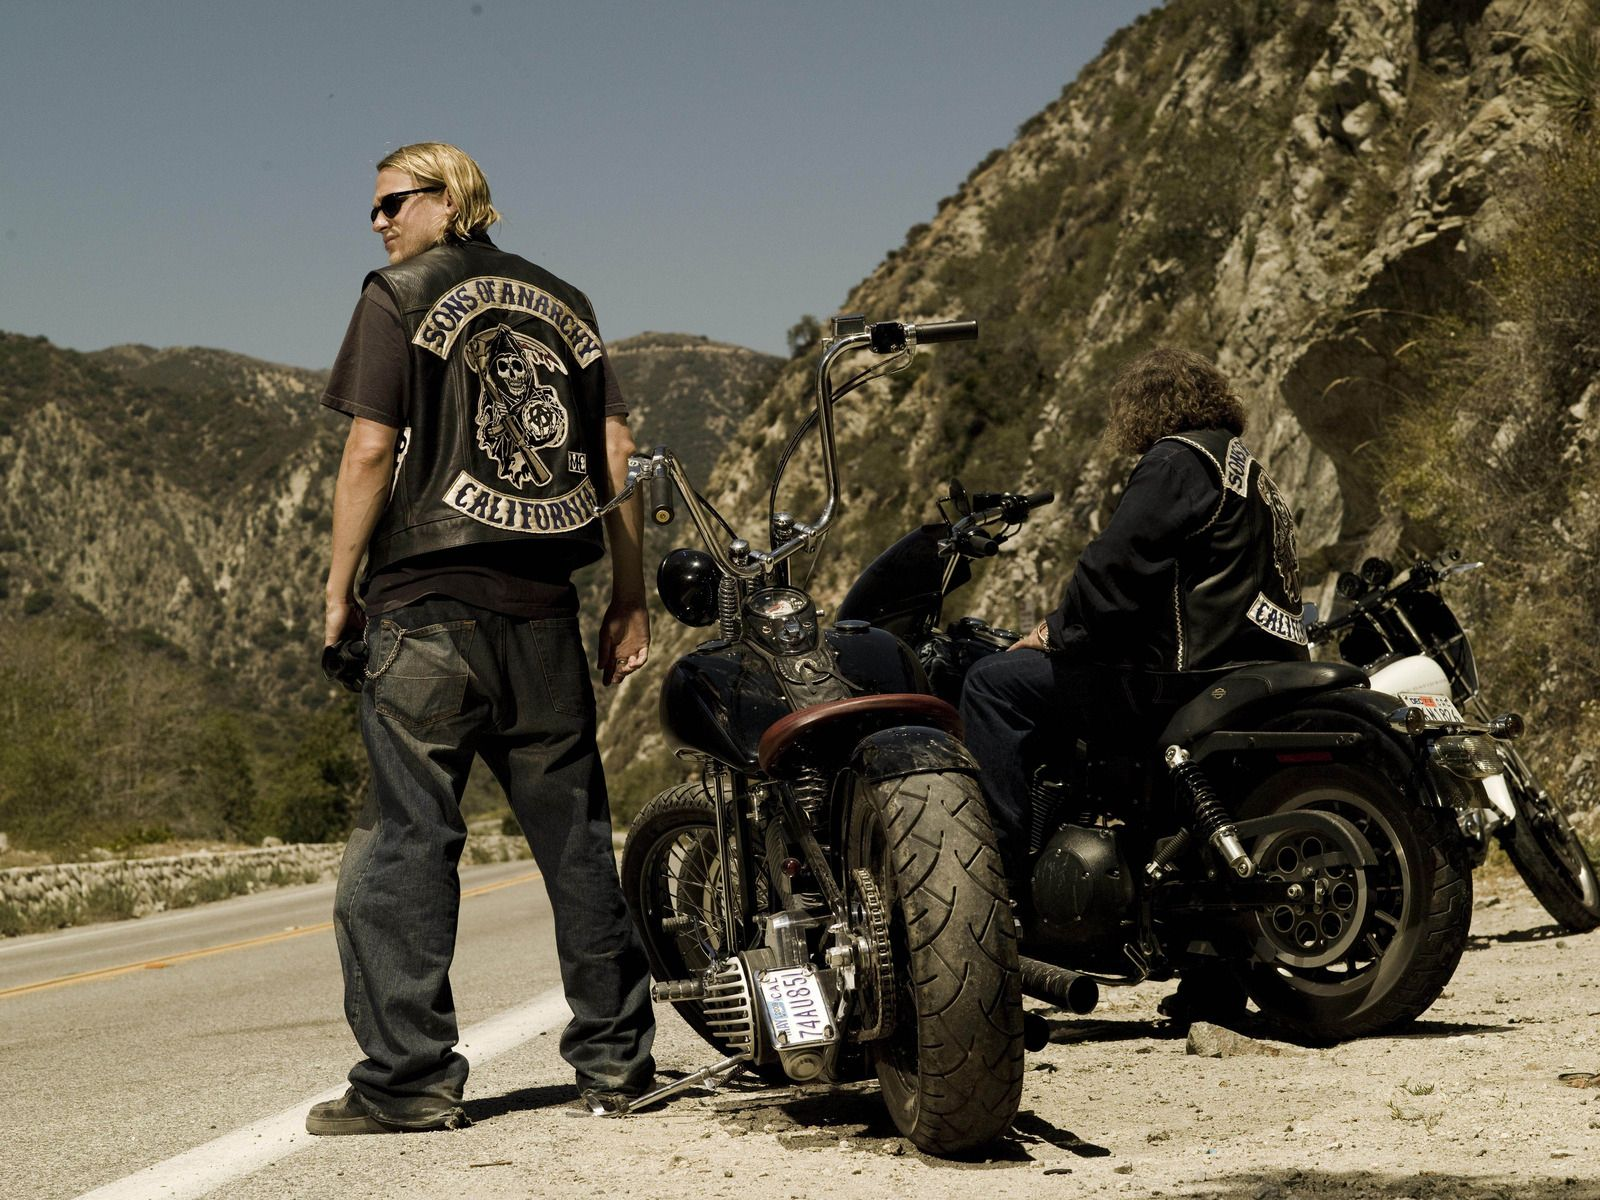 Sons Of Anarchy Wallpaper Jax Teller Sons Of Anarchy Motorcycles Sons Of Anarchy Jax Sons Of Anarchy